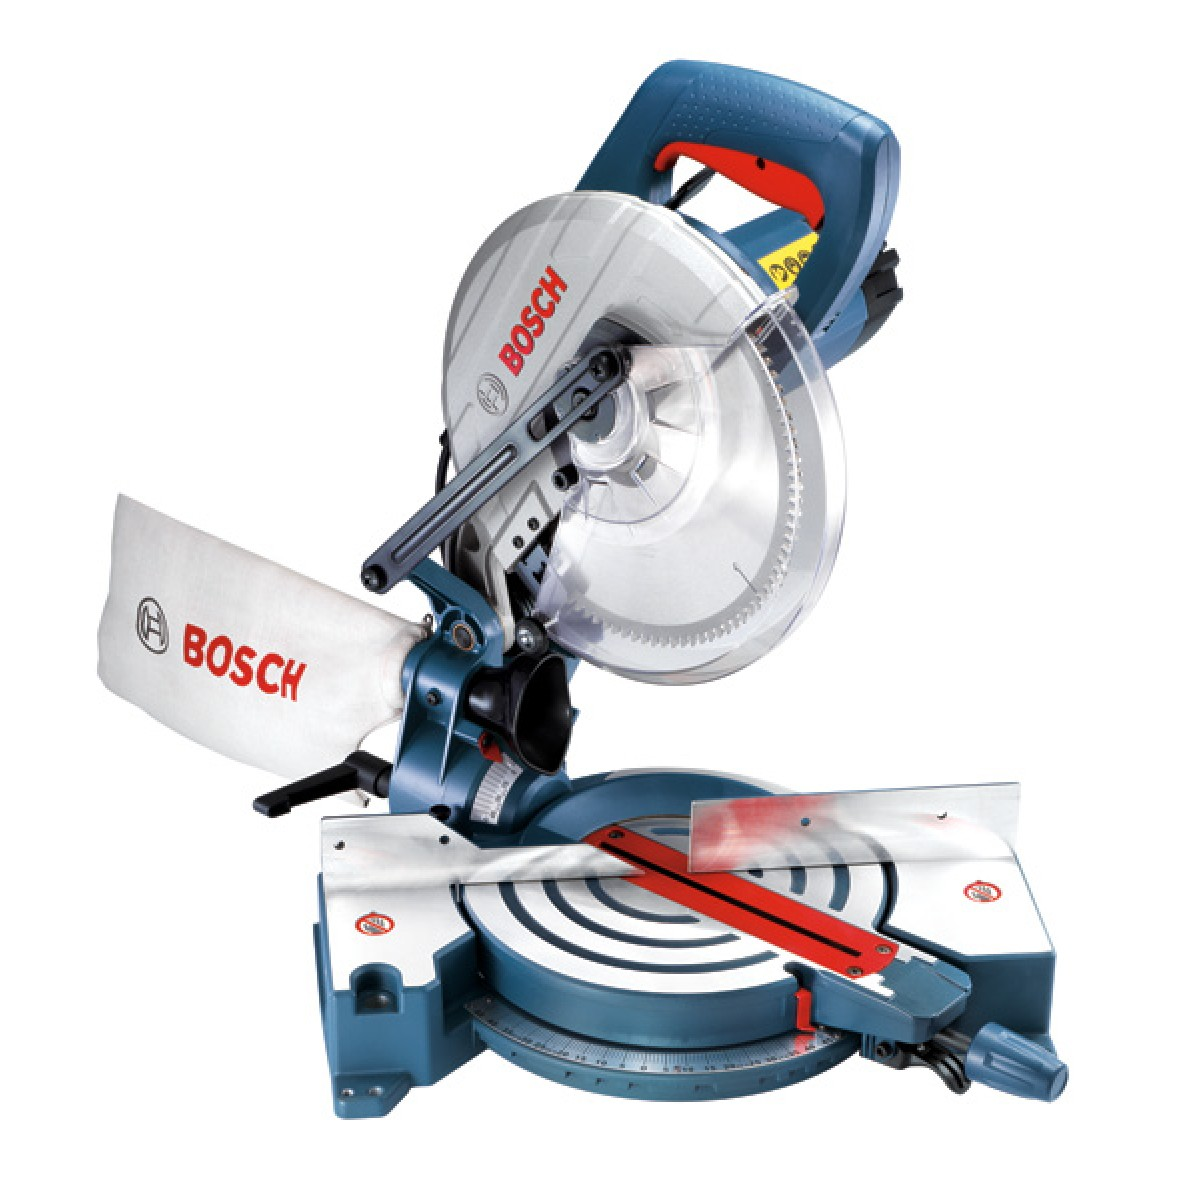 Bosch gcm 10m mitre saw end 5 10 2019 3 57 pm for Gardening tools mitre 10